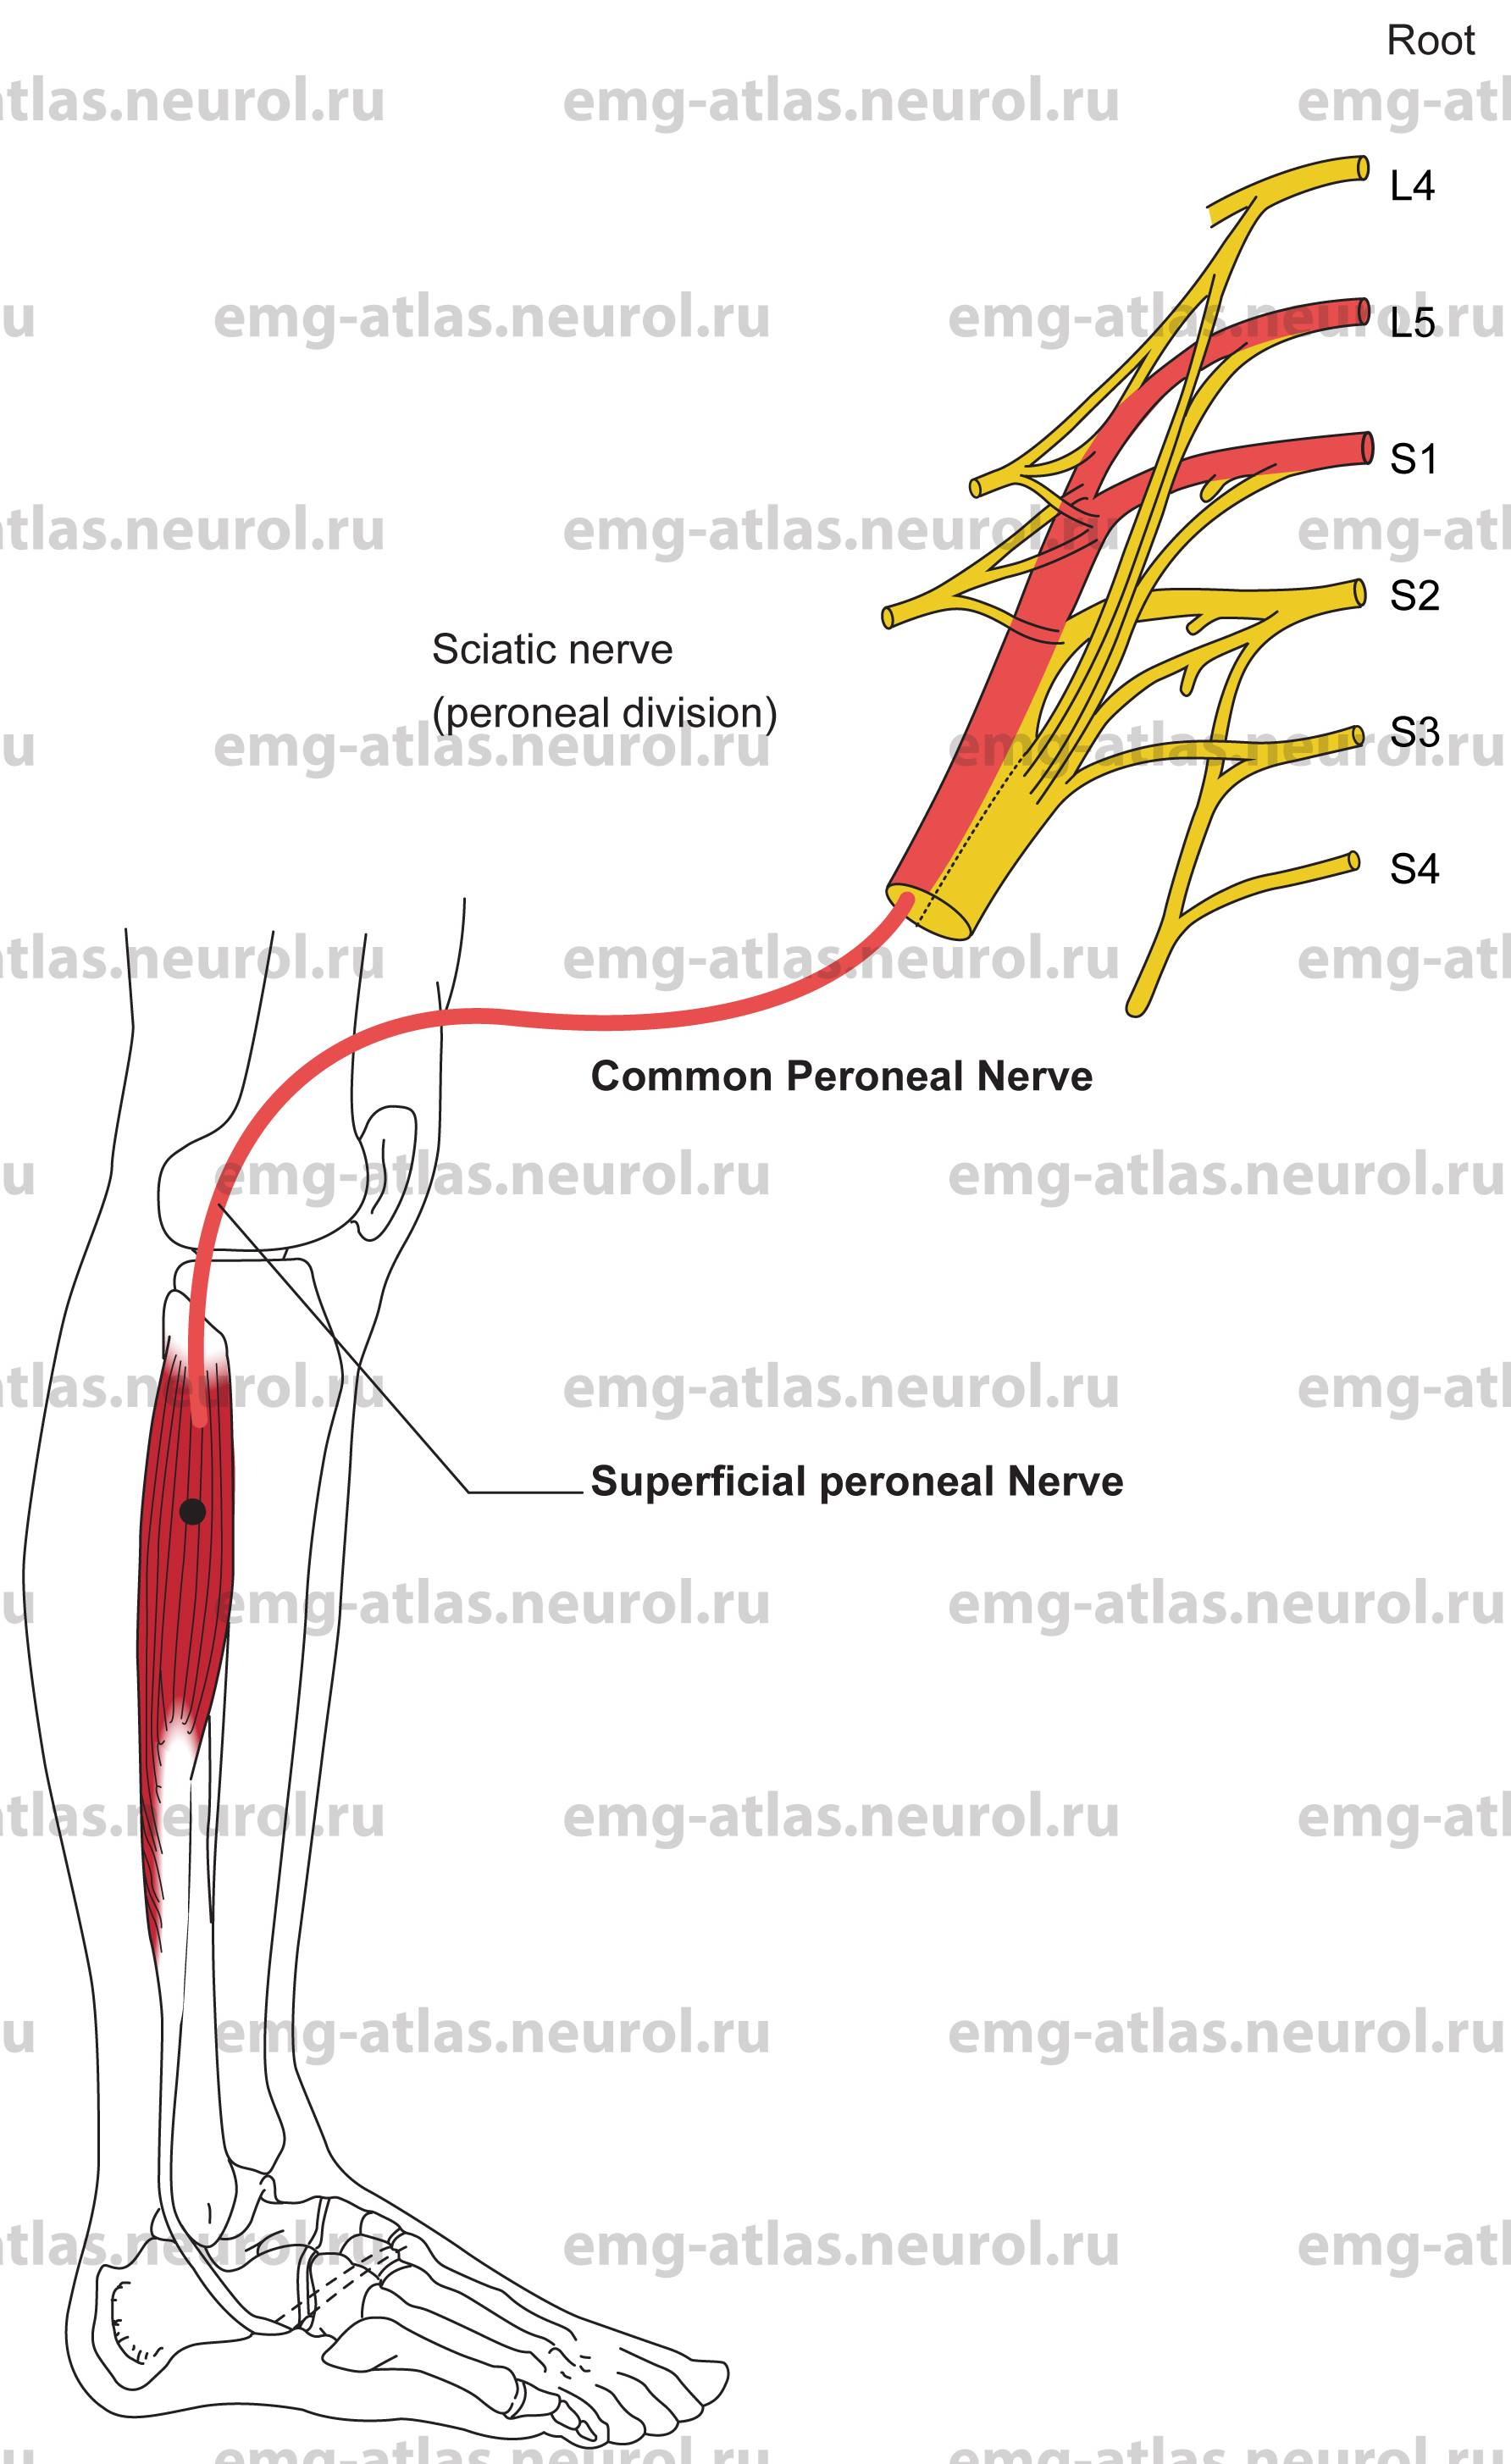 Online Atlas of Electromyography